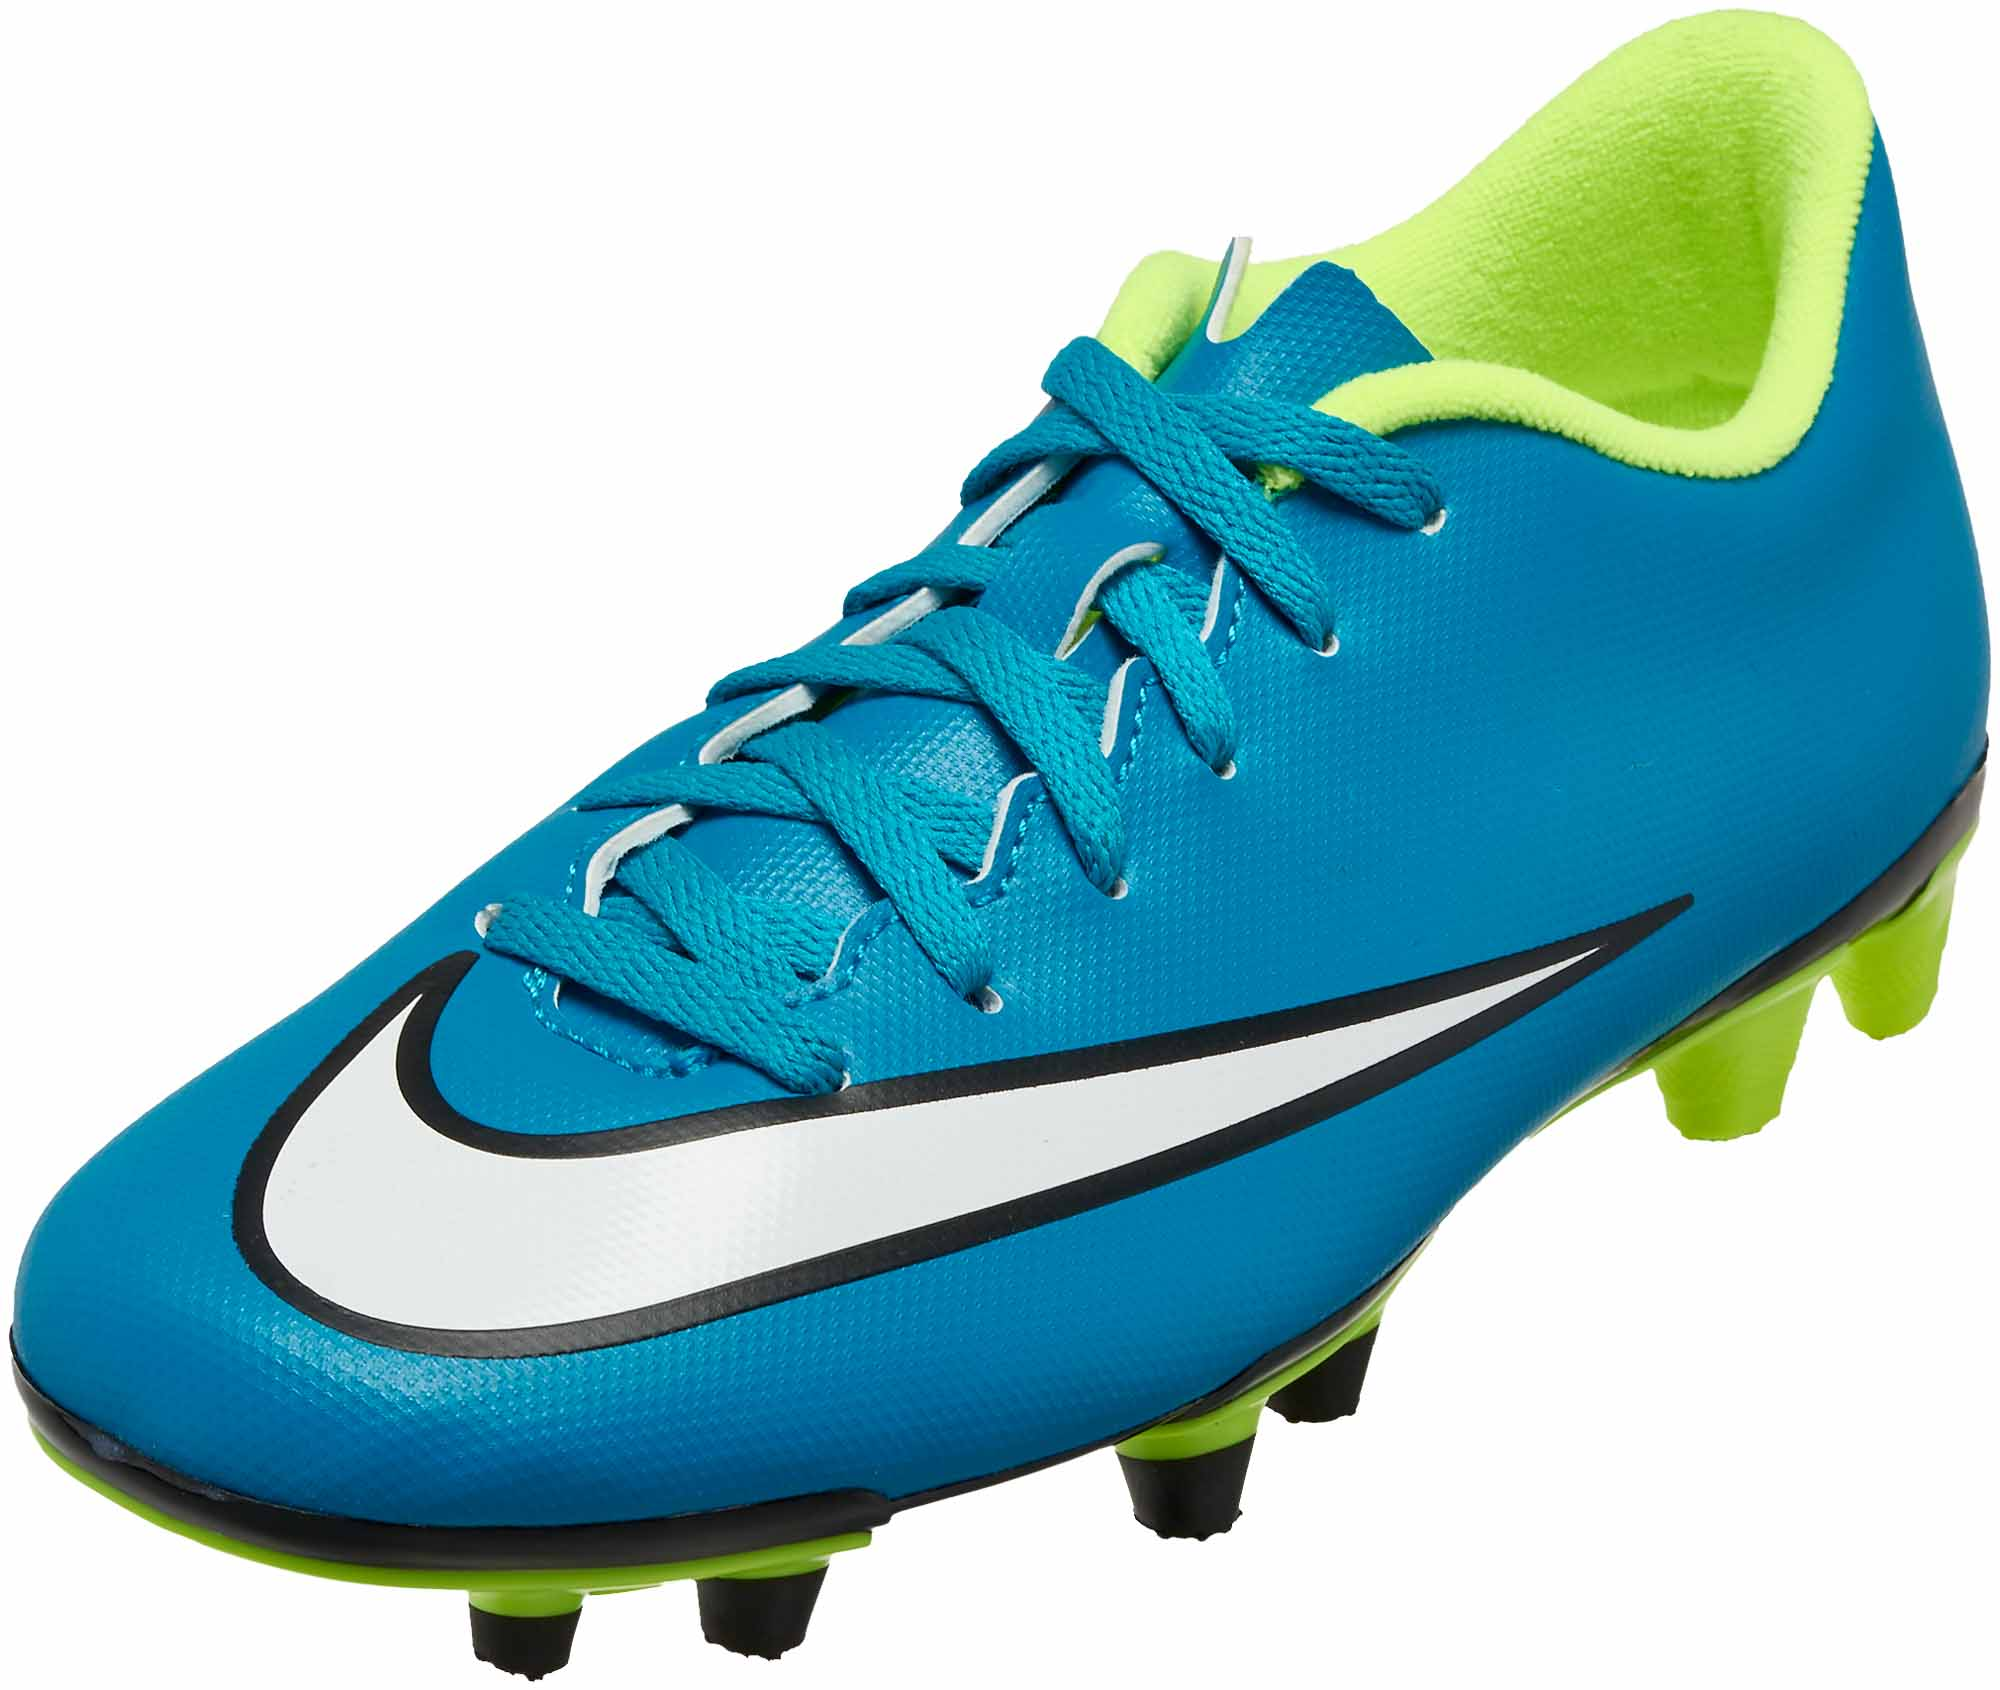 Womens Soccer Shoes Clearance